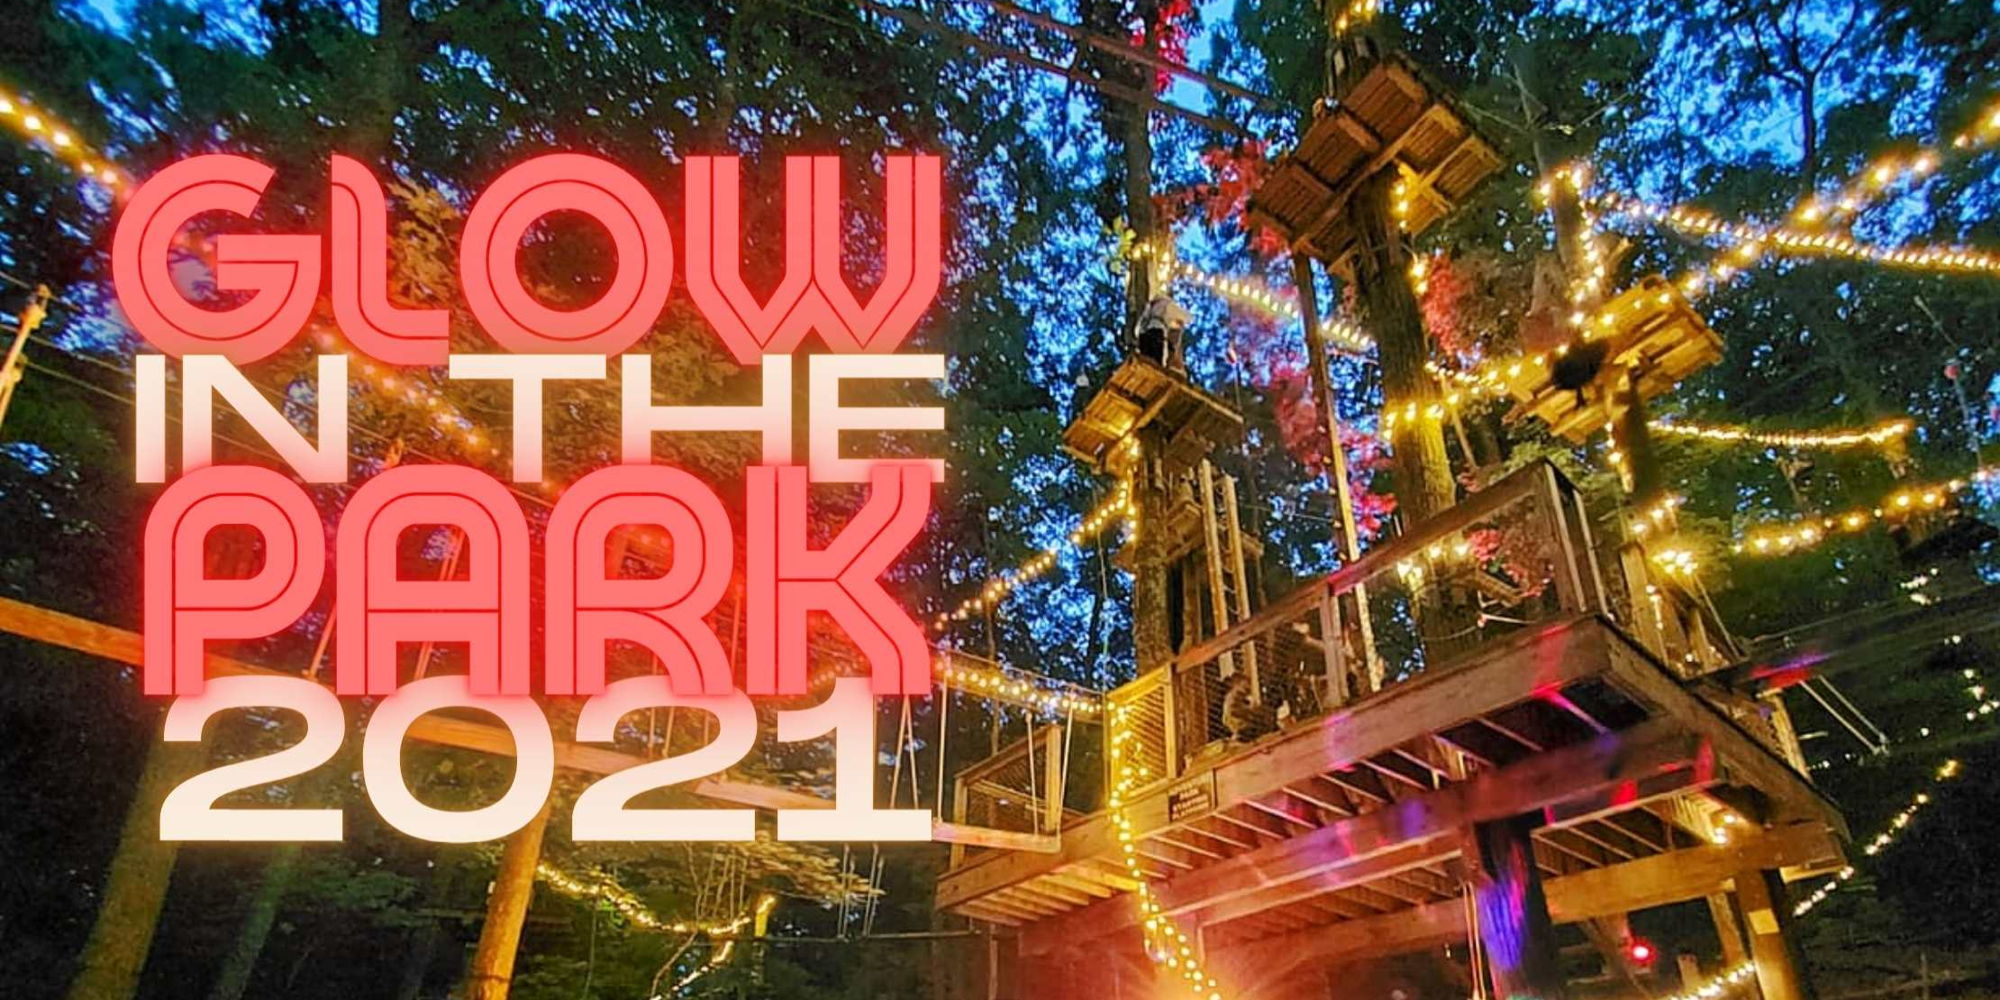 Glow in the Park at The Adventure Park at Long Island